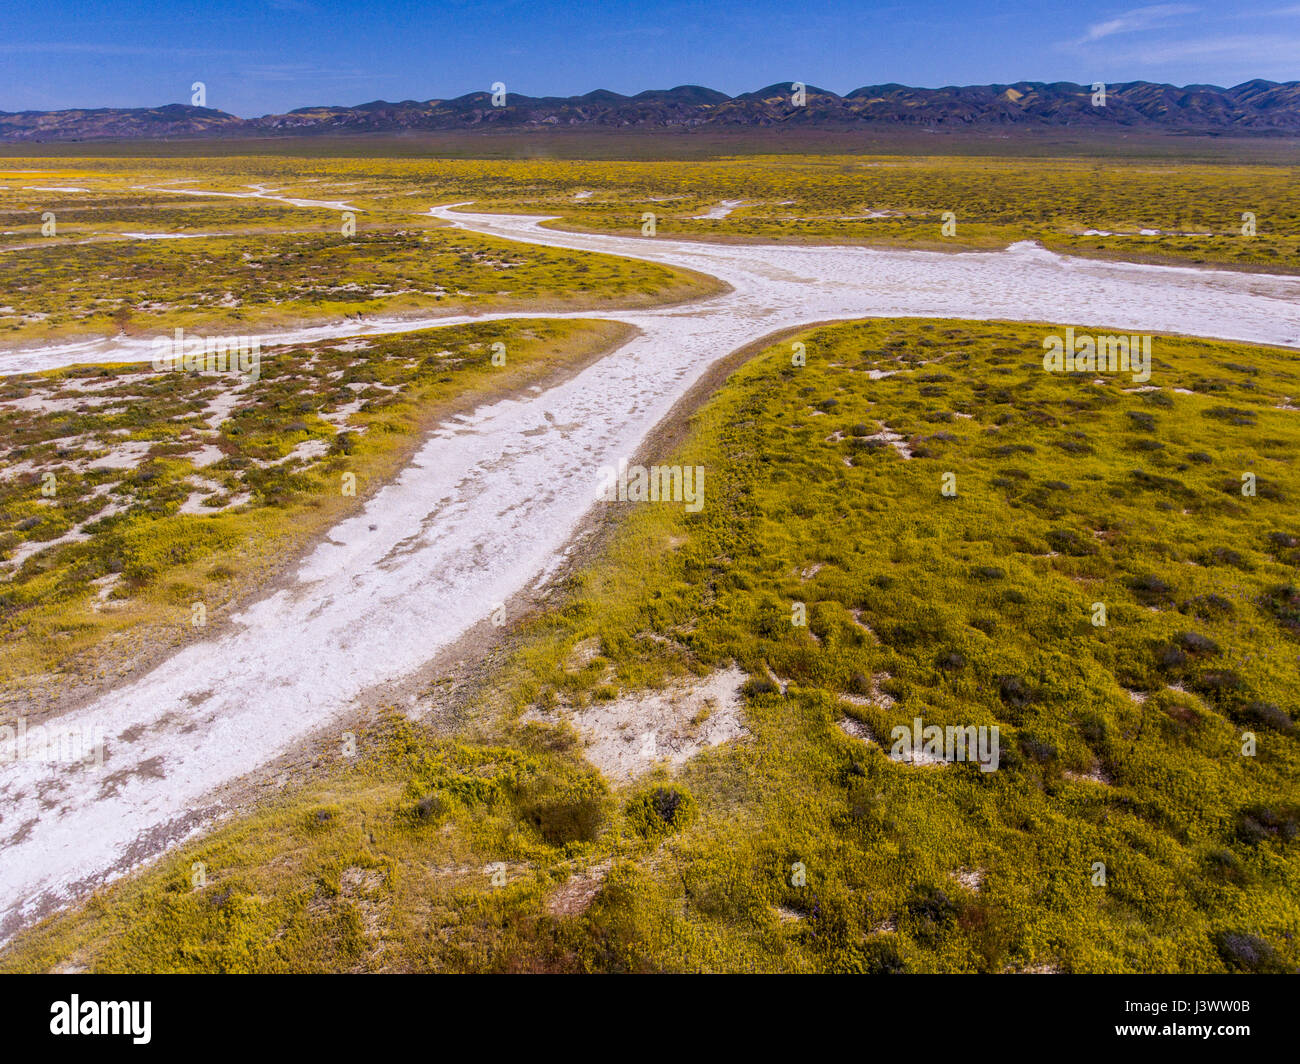 aerial of watershed of Soda Lake and wildflowers, Carrizo Plains National Monument, California - Stock Image